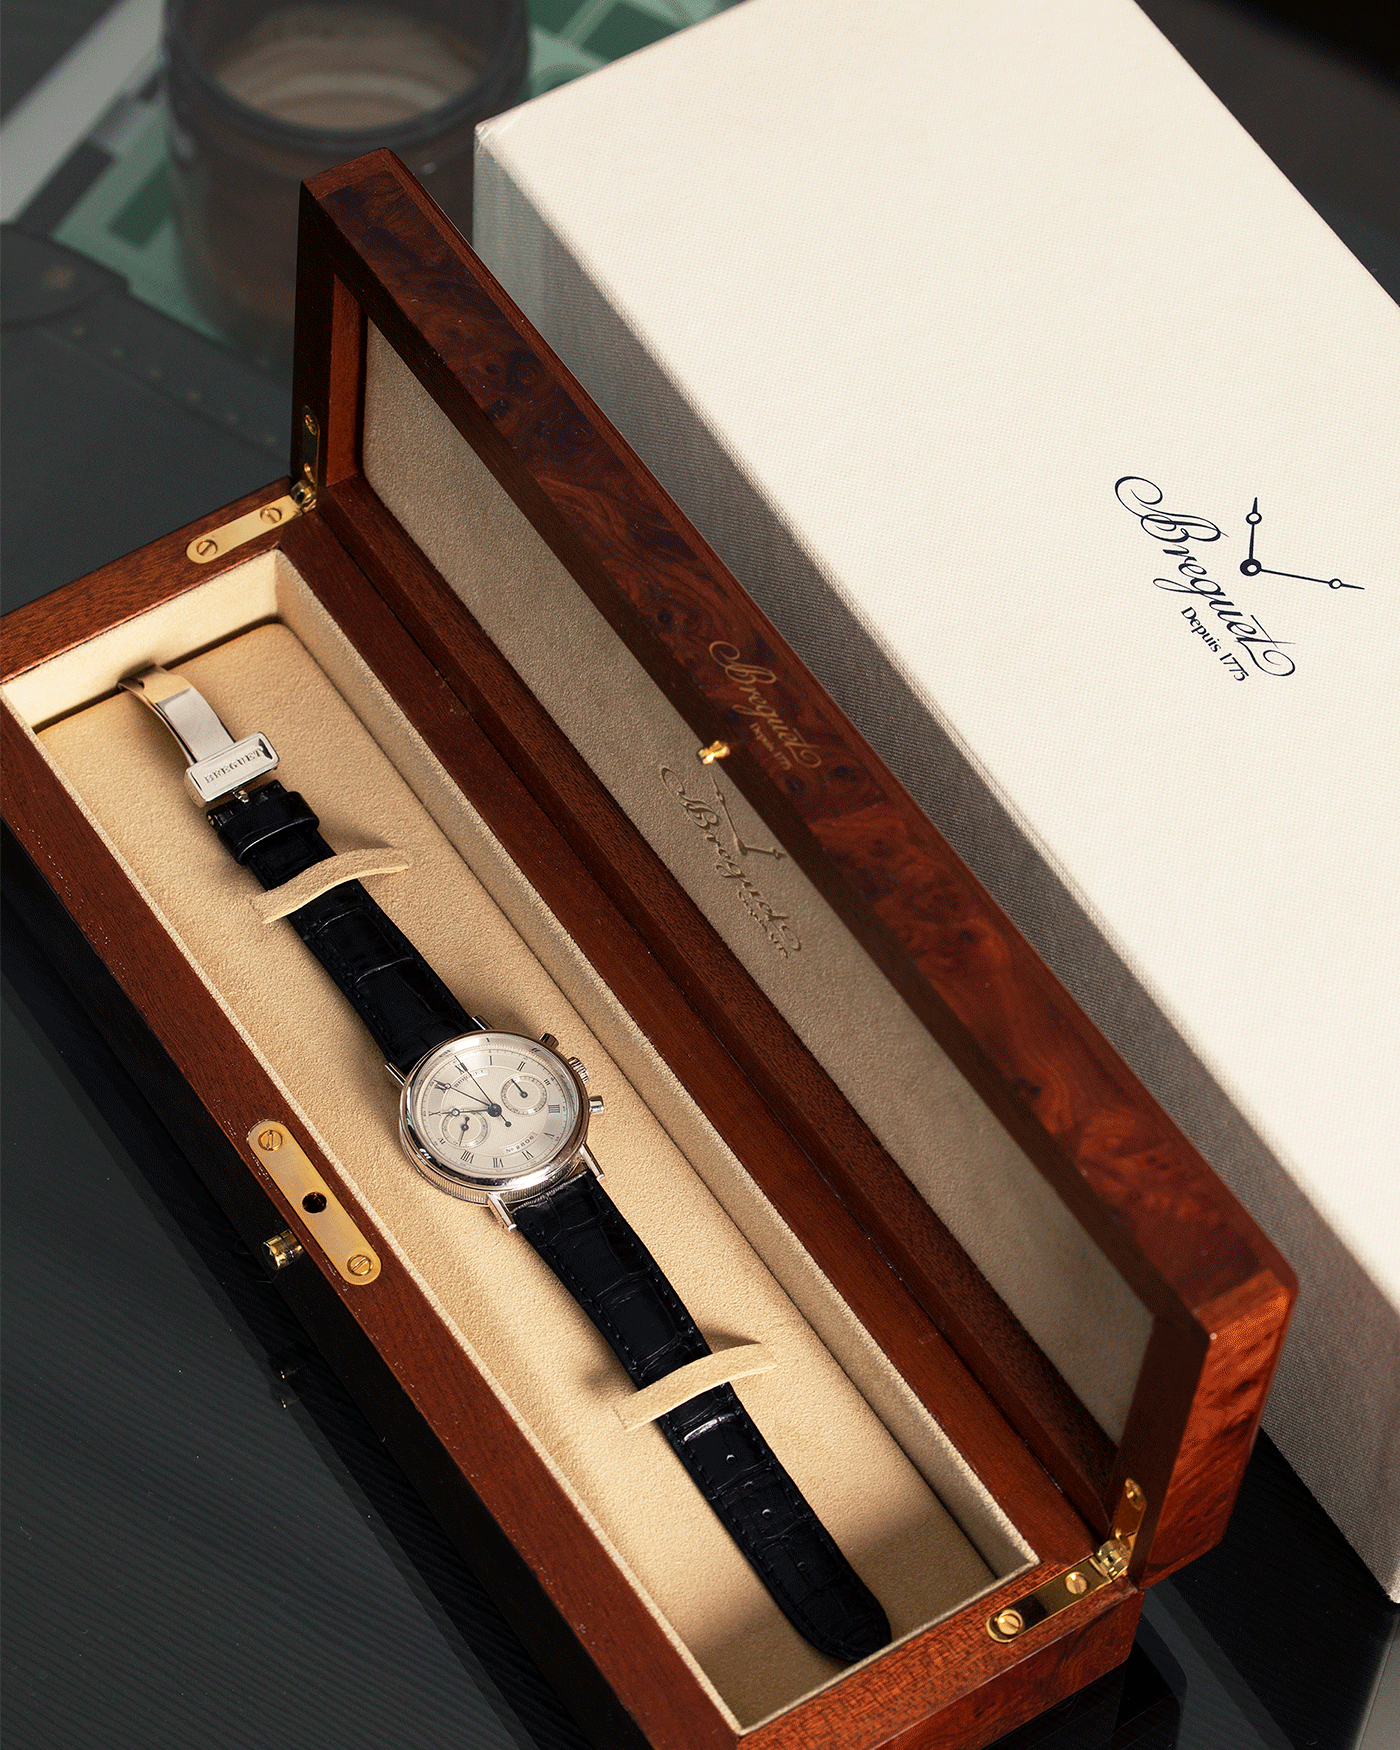 Brand: Breguet Year: 1990's Model: 3237 Material: 18k White Gold Movement: Lemania 2310 Case Diameter: 36mm Strap: Breguet Black Alligator with Deployant ClaspBrand: Breguet Year: 1990's Model: 3237 Material: 18k White Gold Movement: Lemania 2310 Case Diameter: 36mm Strap: Breguet Black Alligator with Deployant Clasp